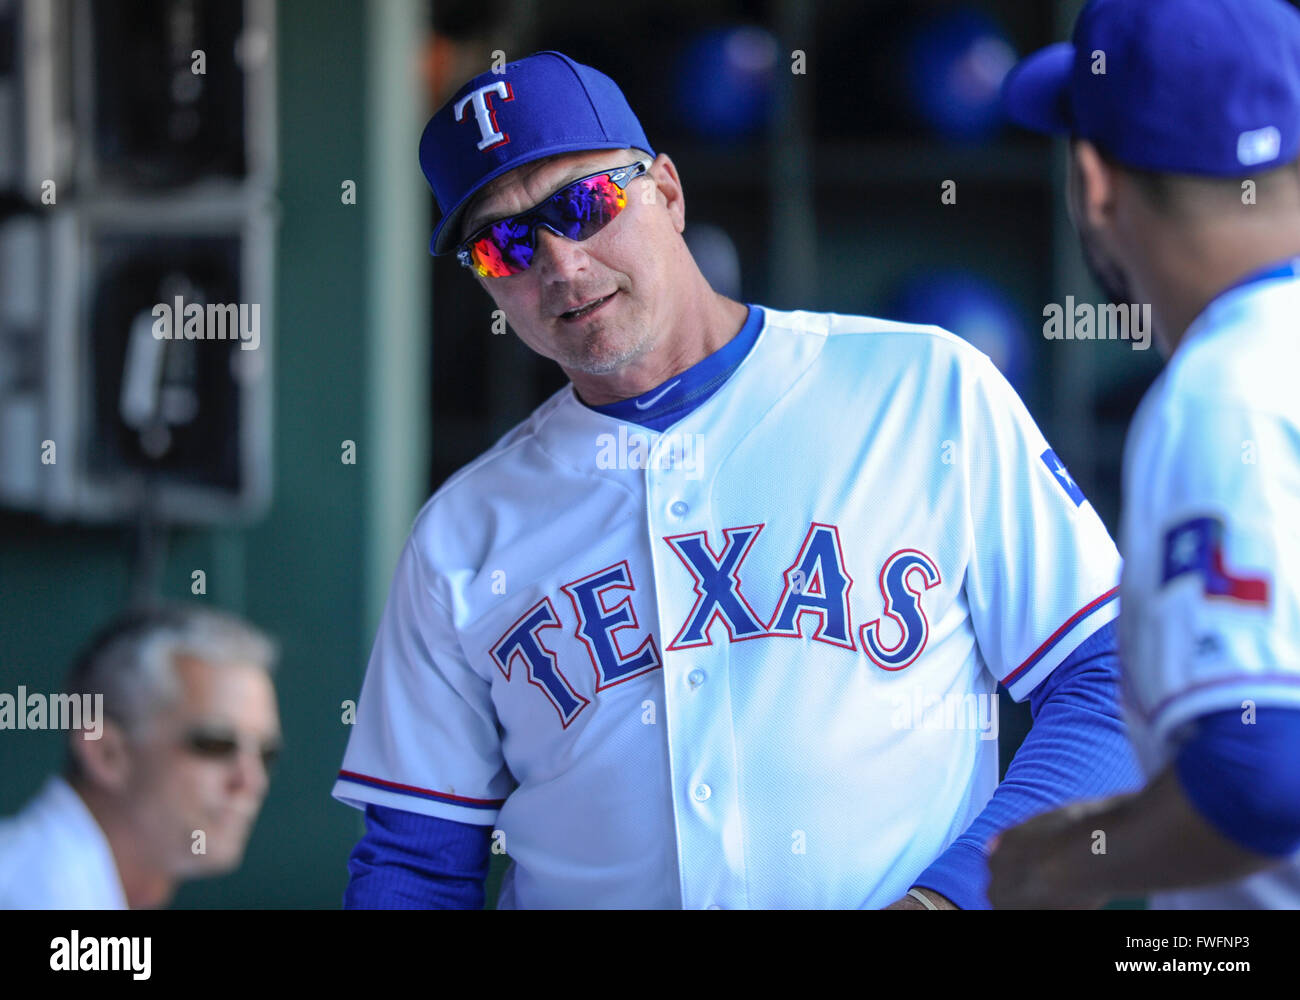 APR 04, 2016: Texas Rangers manager Jeff Banister #28 ...